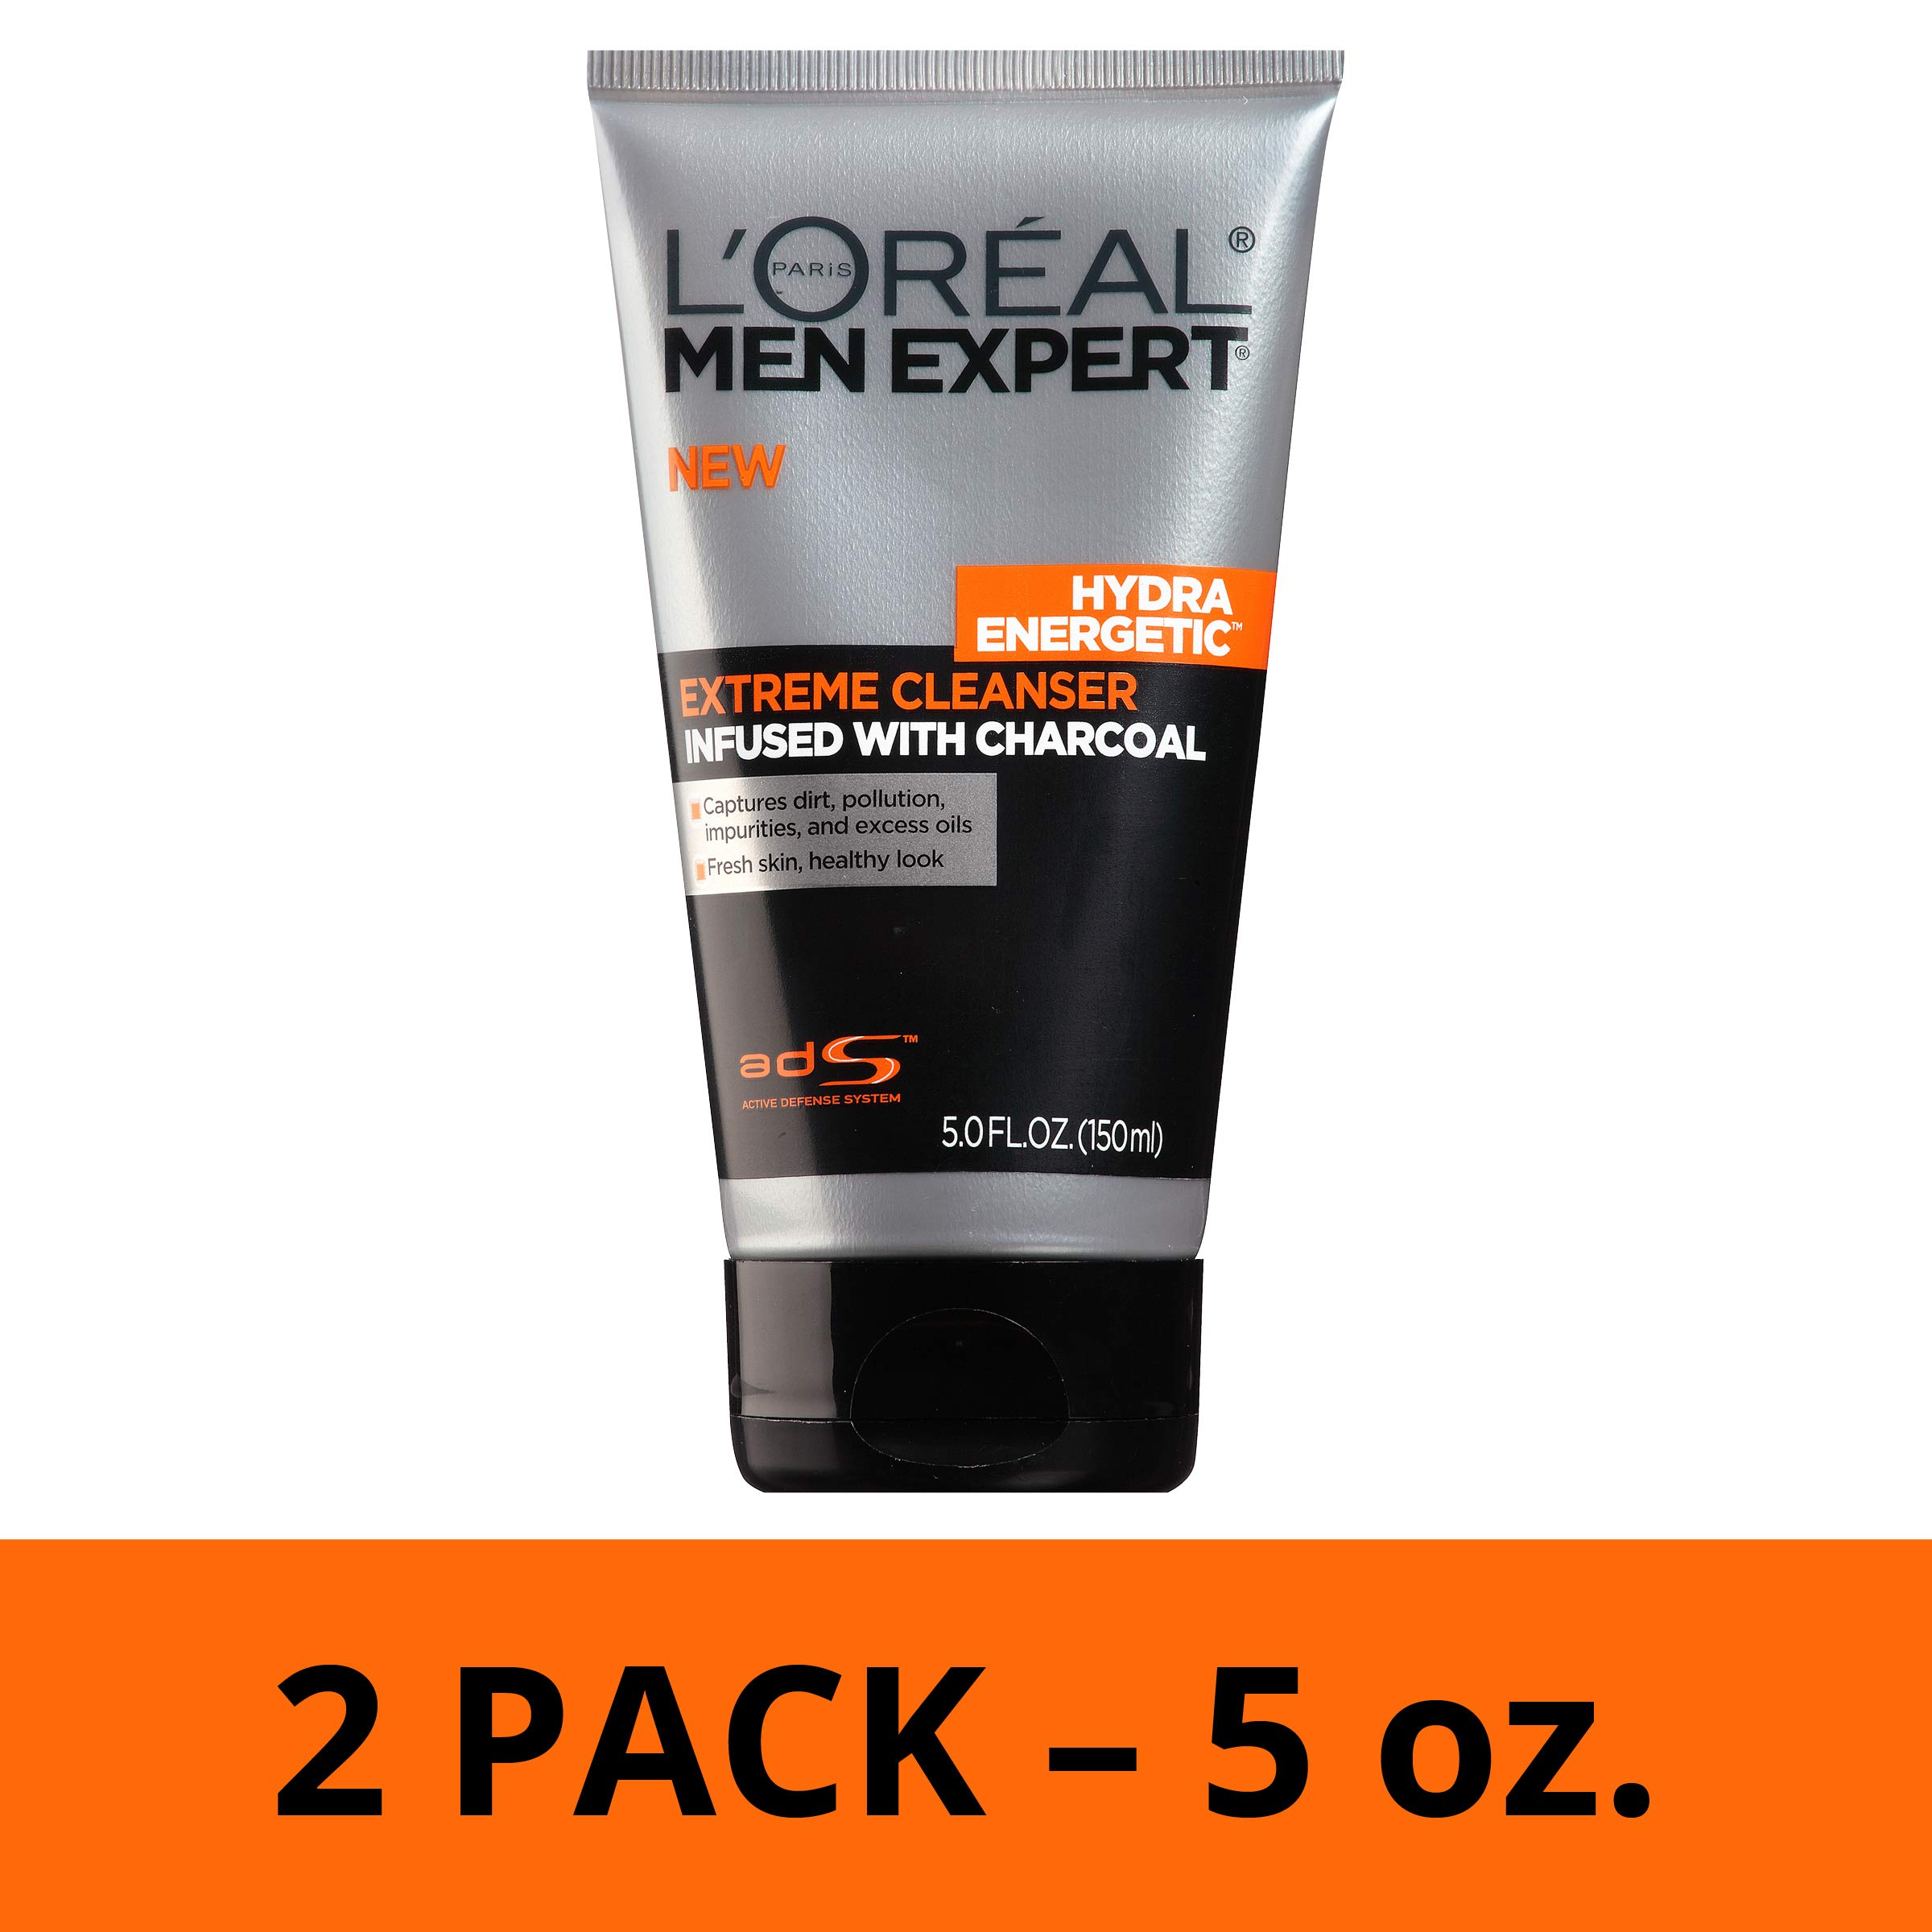 L'Oréal Paris Skincare Men Expert Hydra Energetic Facial Cleanser with Charcoal for Daily Face Washing, 2 count by L'Oreal Paris